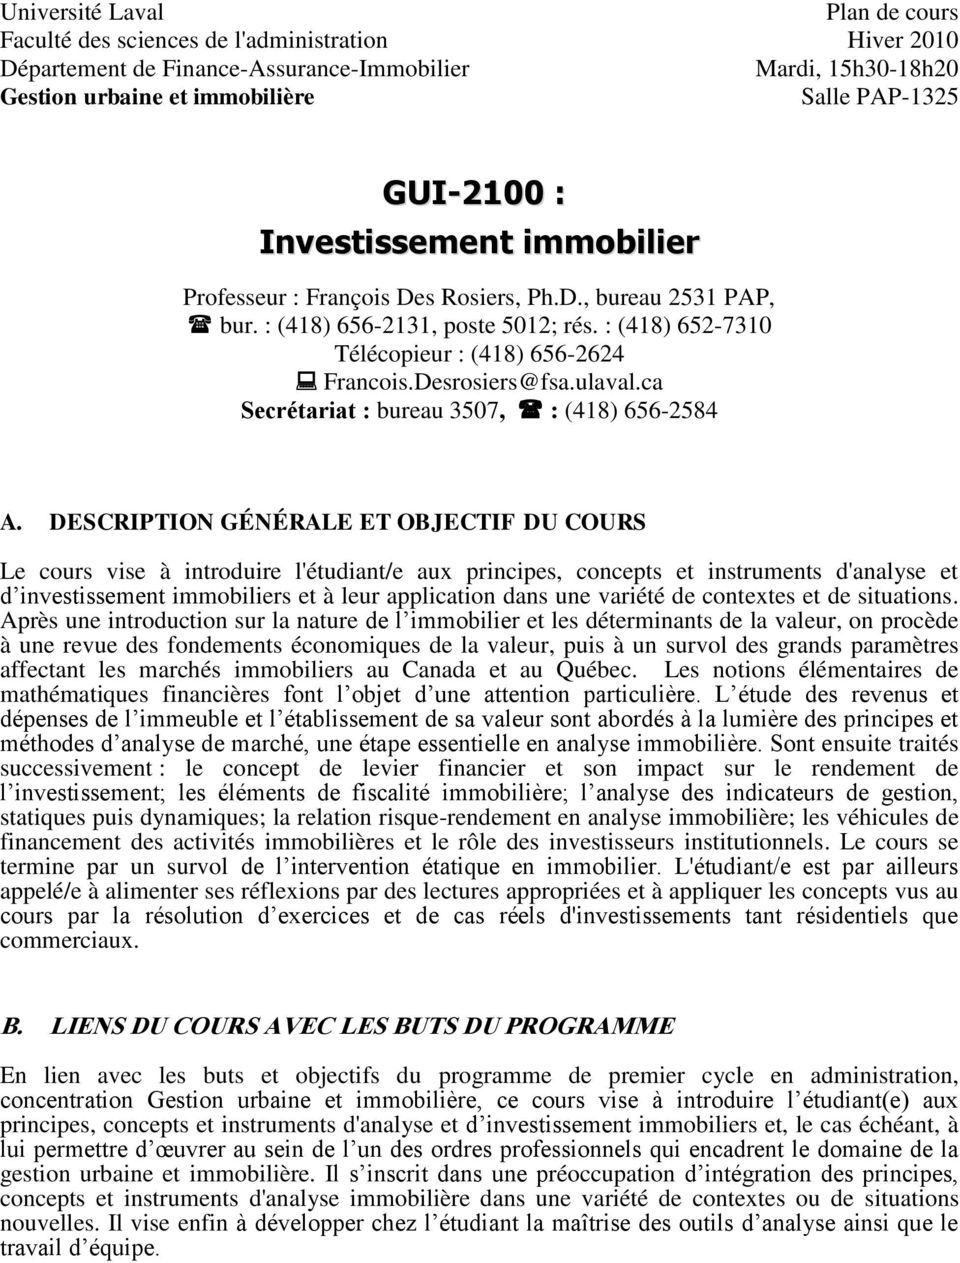 investissement immobilier ulaval